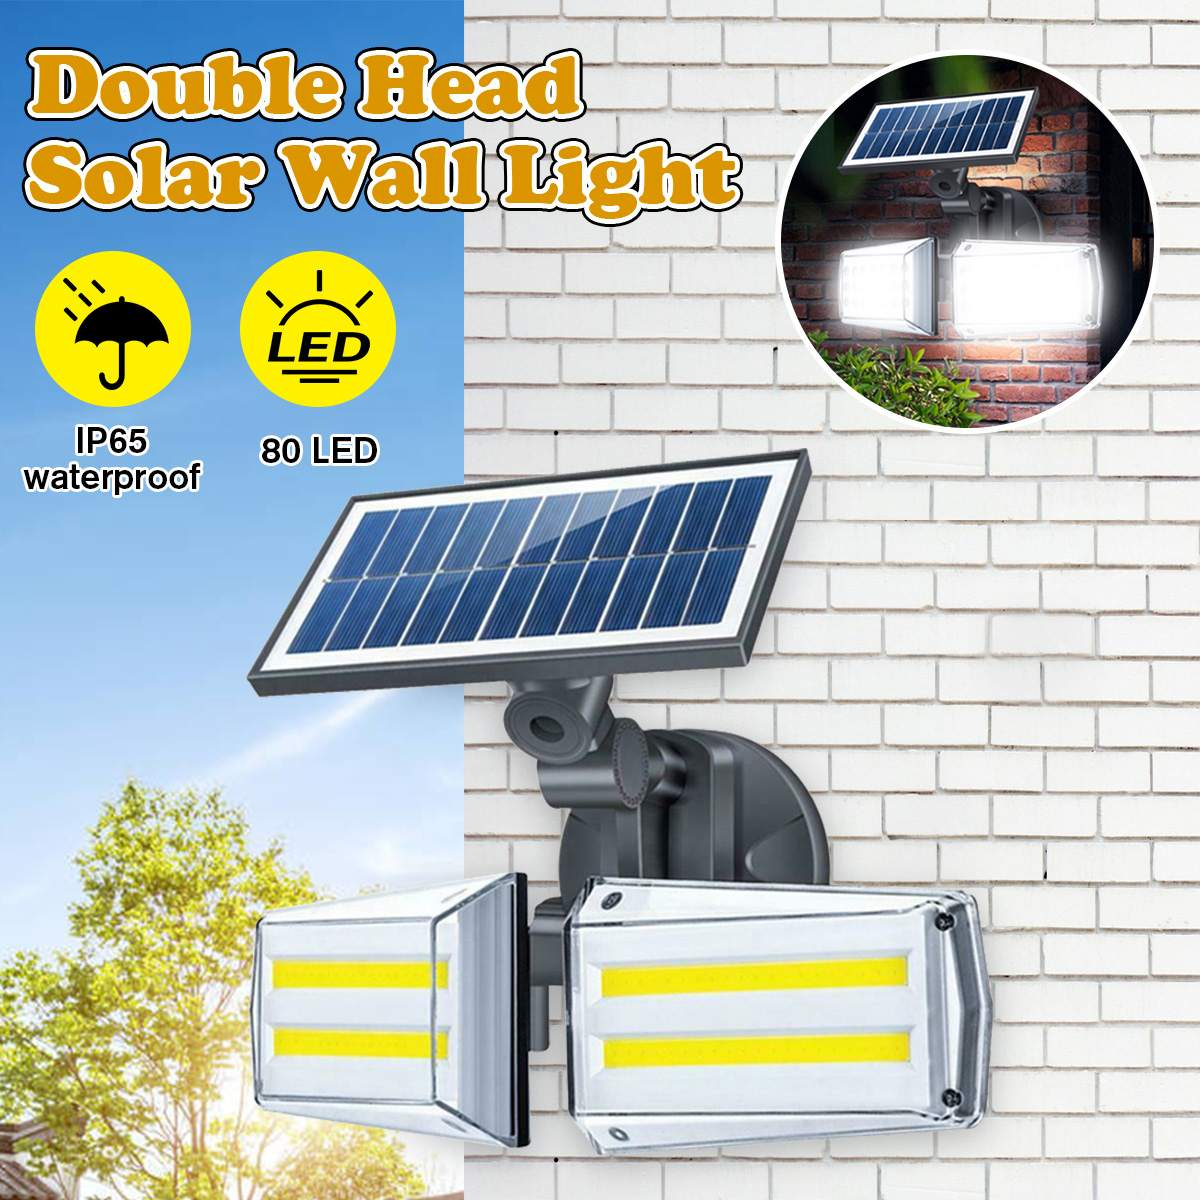 100W LED Dual Head Solar Lamp Radar Sensor COB Wall Light Spotlight Outdoors Solar Garden Light Yard LED Lamp Waterproof IP68